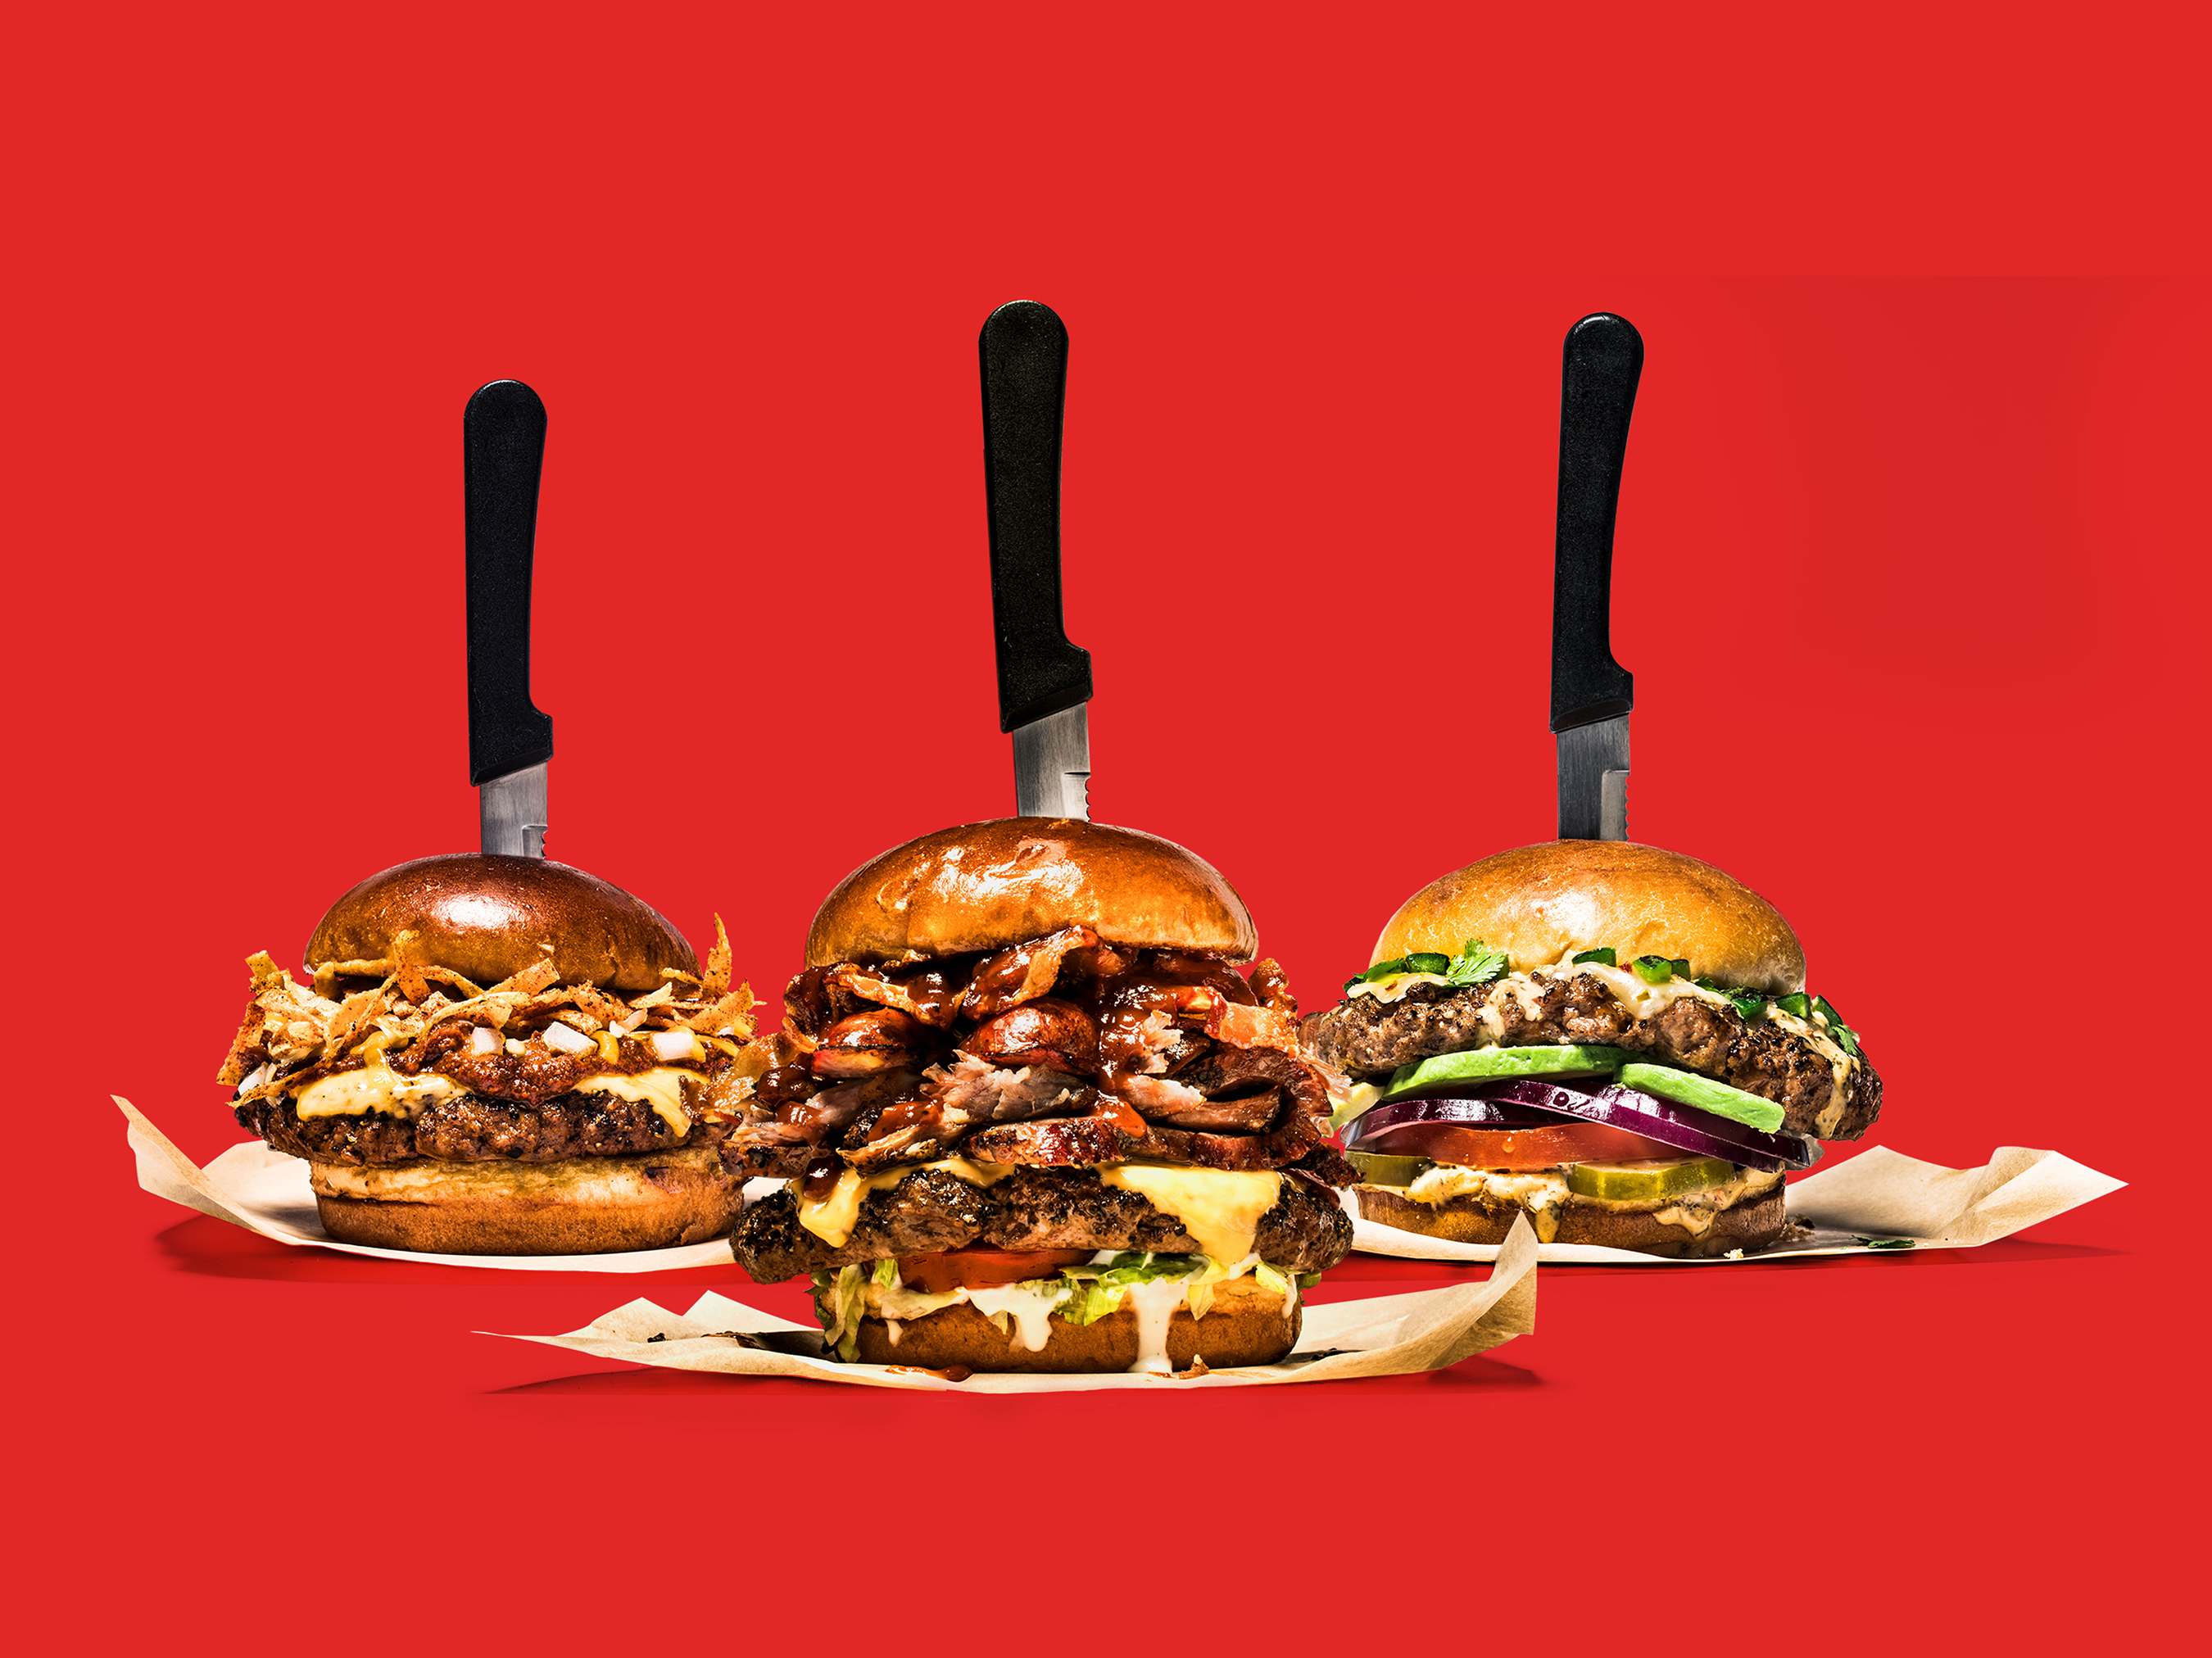 Our innovation game is strong with burgers. In addition to The Boss, we're introducing Chili's Chilis (left) and Alex's Santa Fe (right).